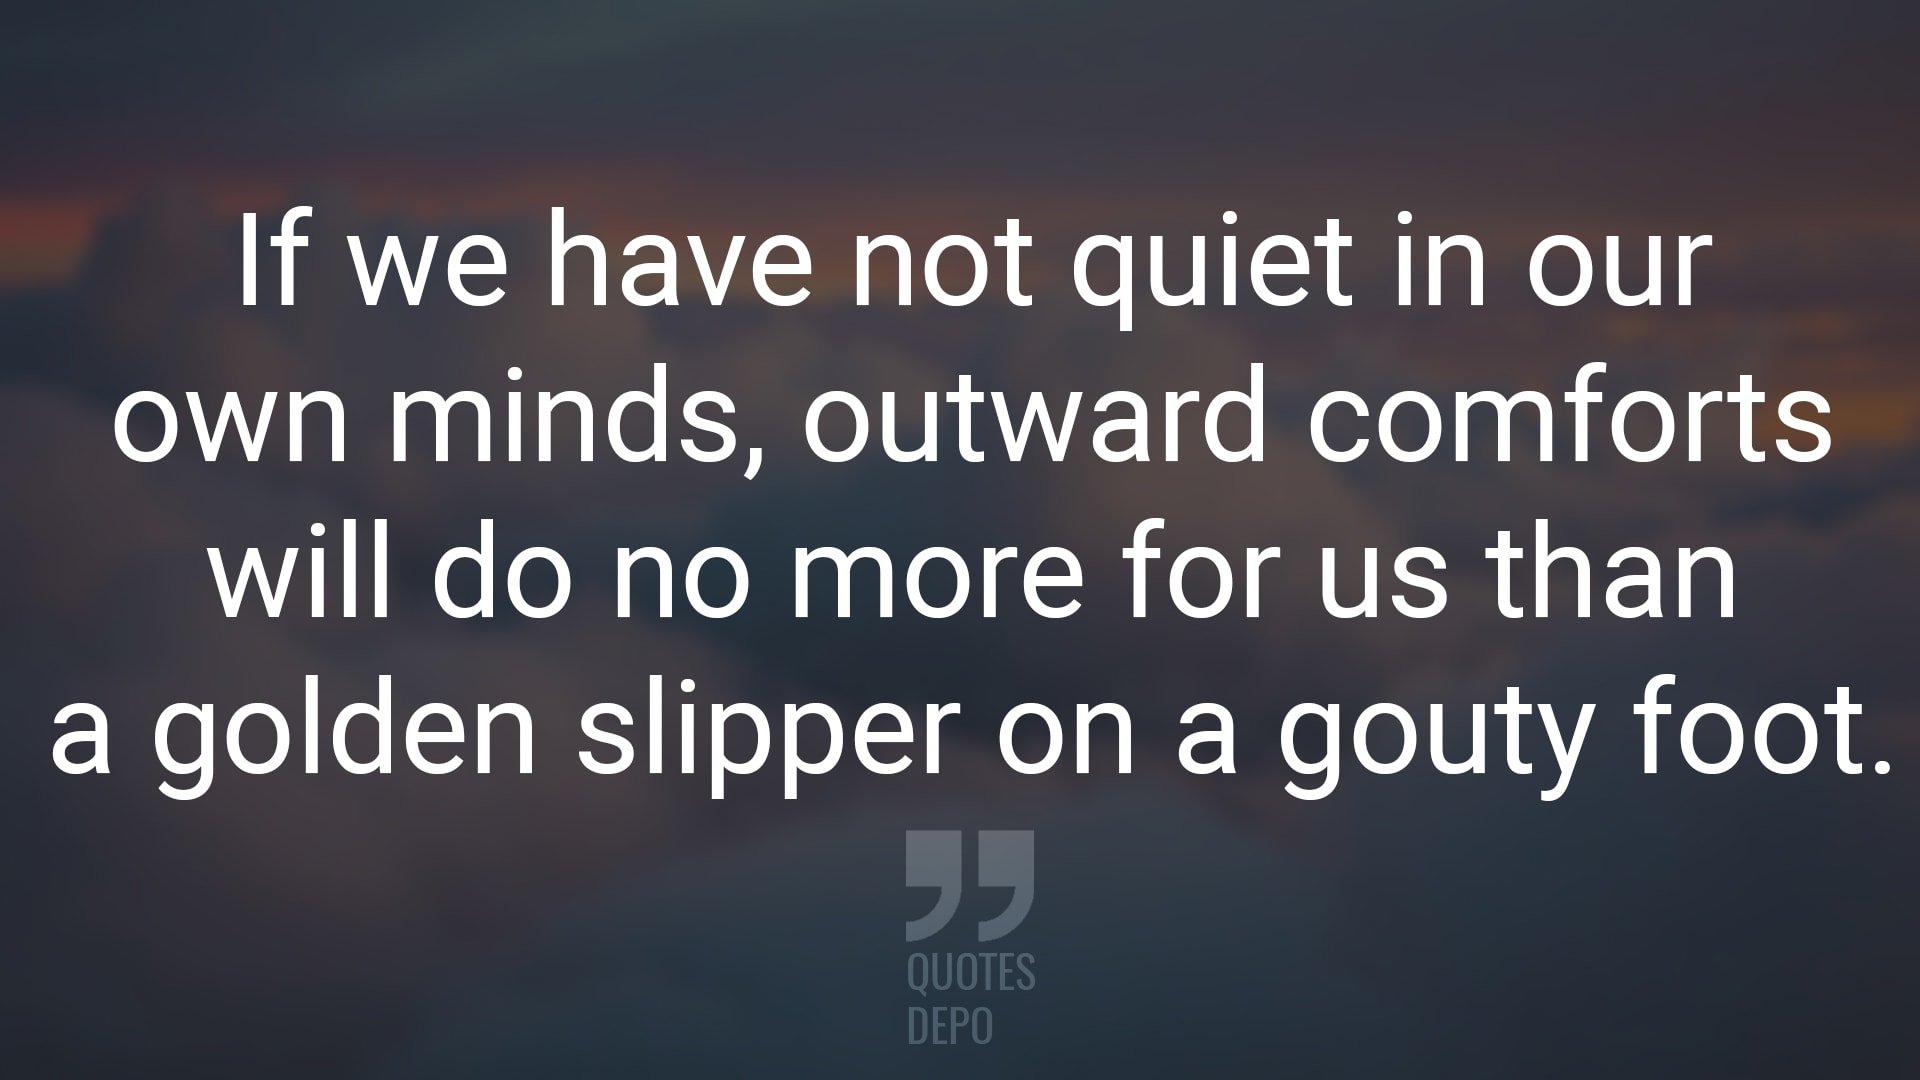 if we have not quiet in our own minds